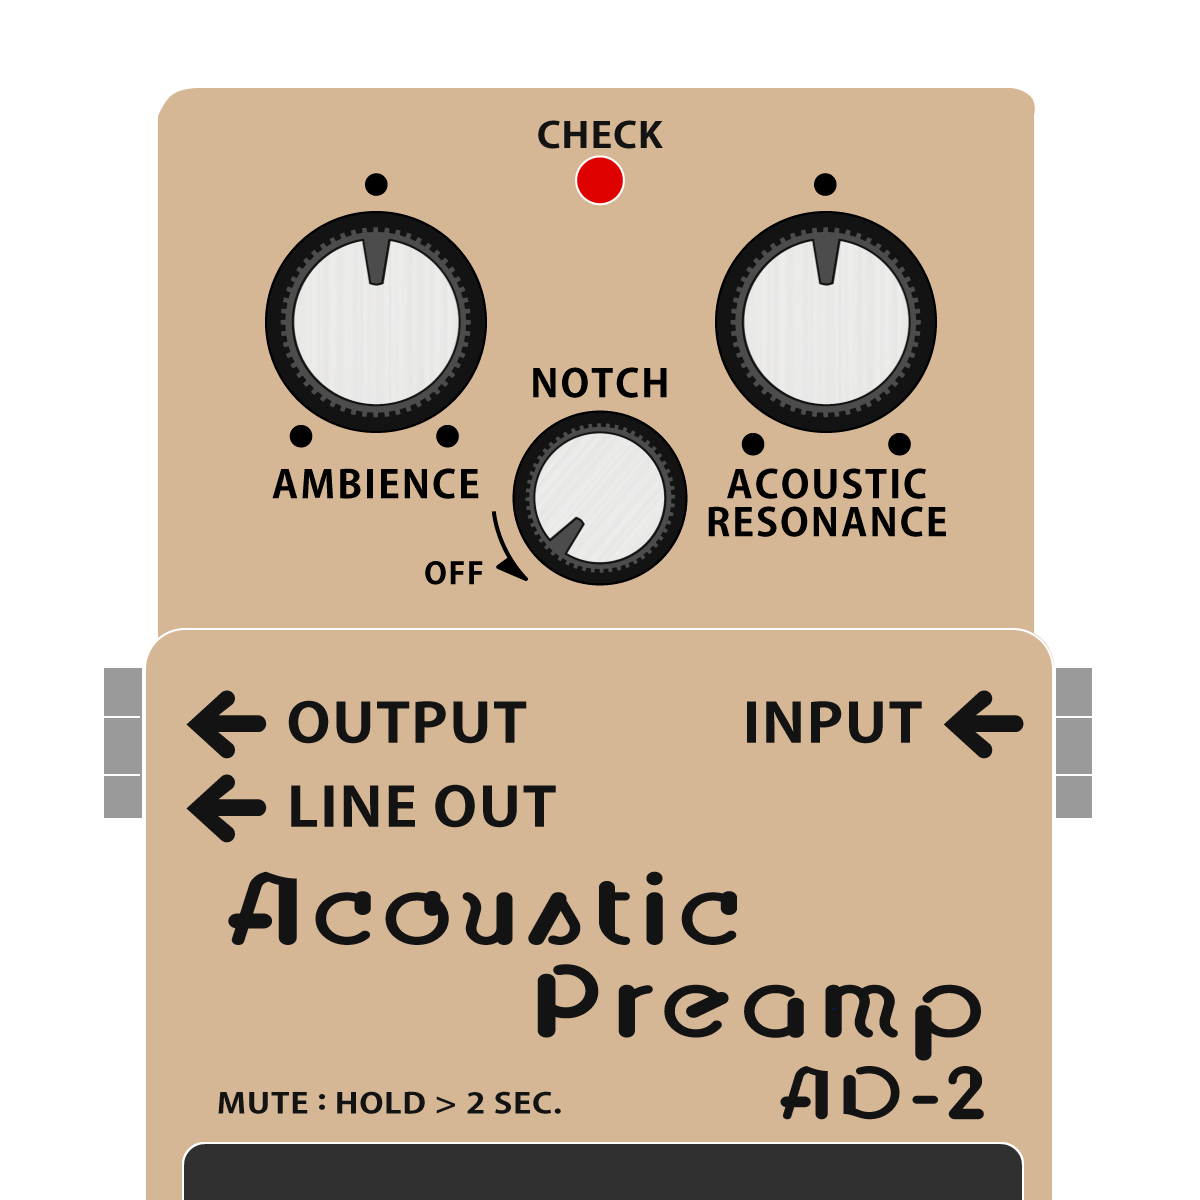 BOSS AD-2 Acoustic Preamp アコースティックプリアンプイラスト